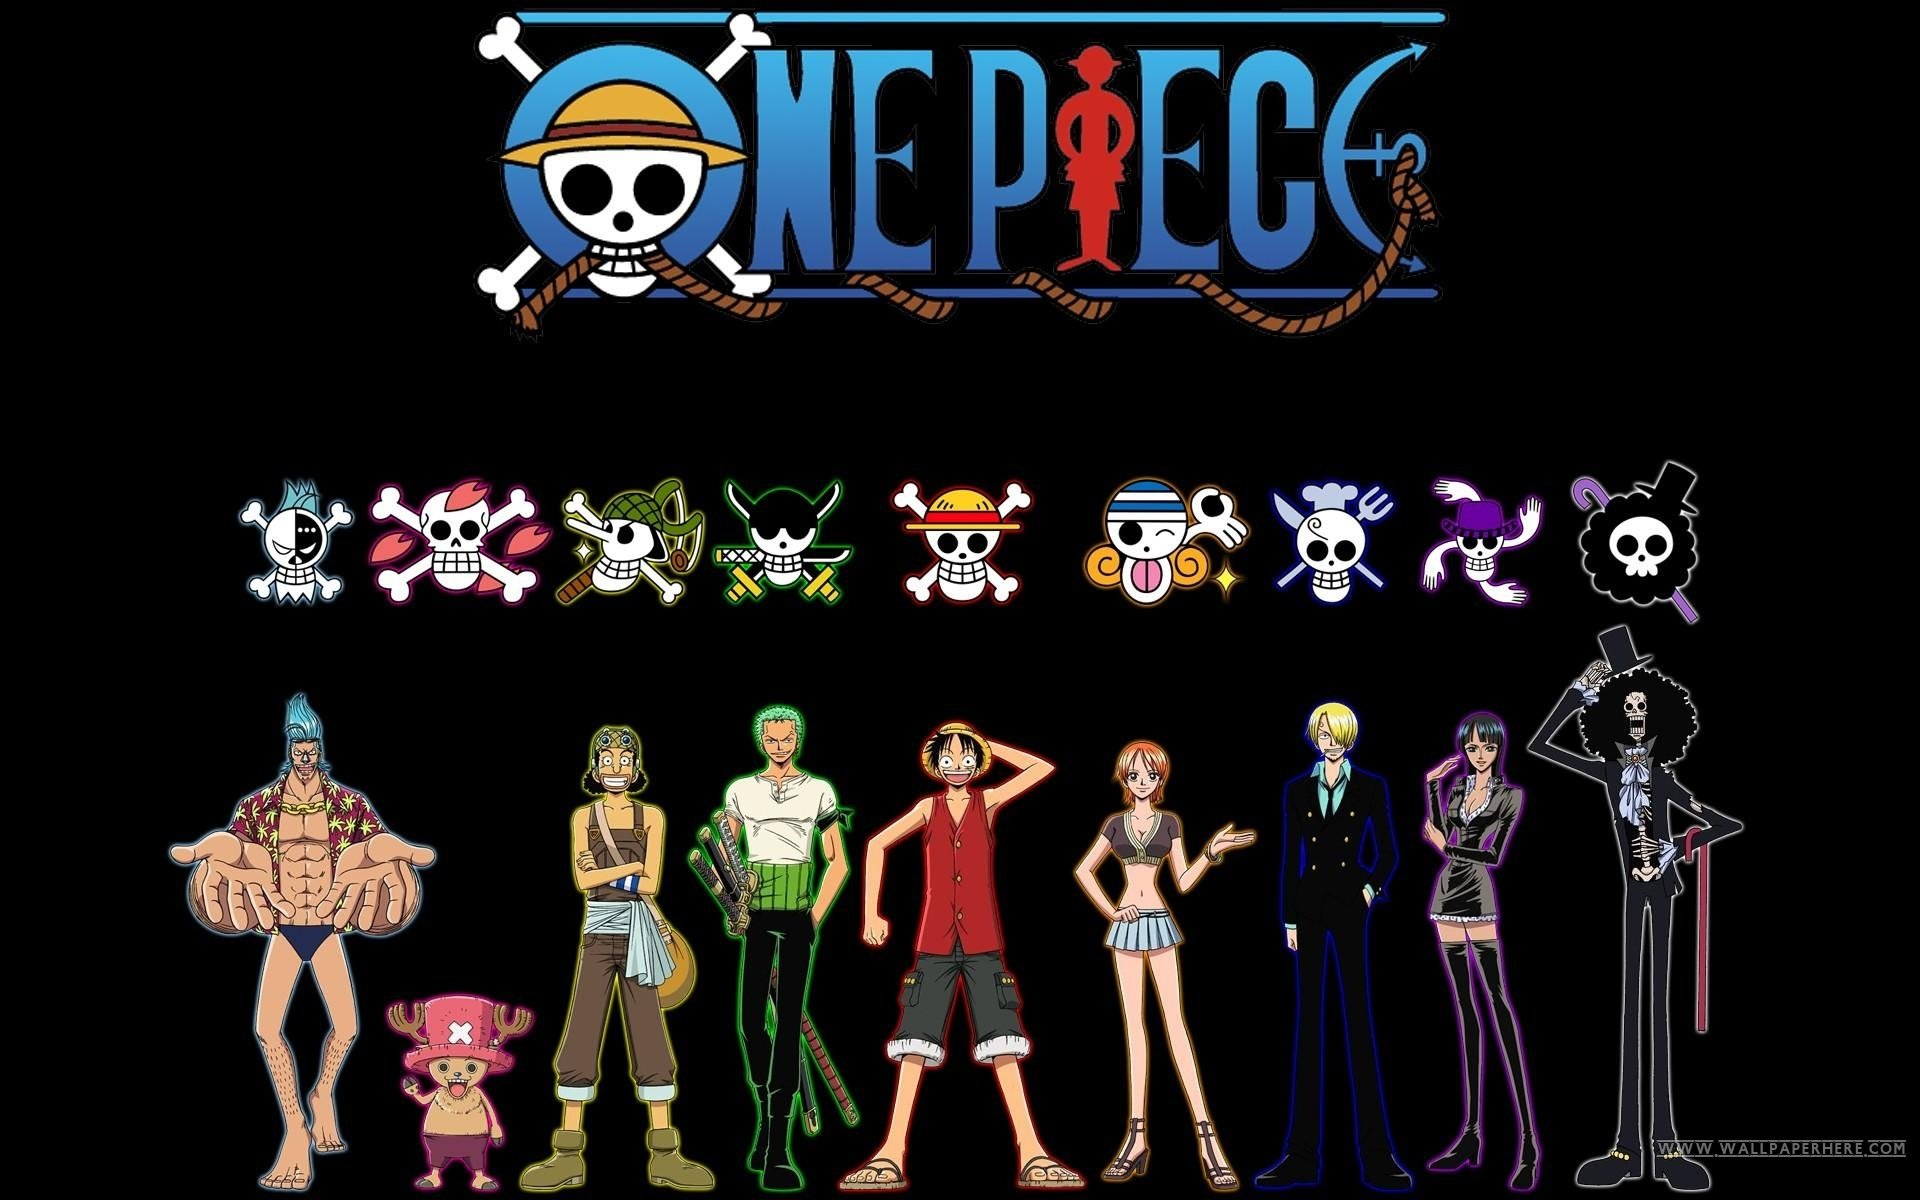 10 Gorgeous One Piece Anime HD Wallpapers   Design Hey Design Hey 1920x1200